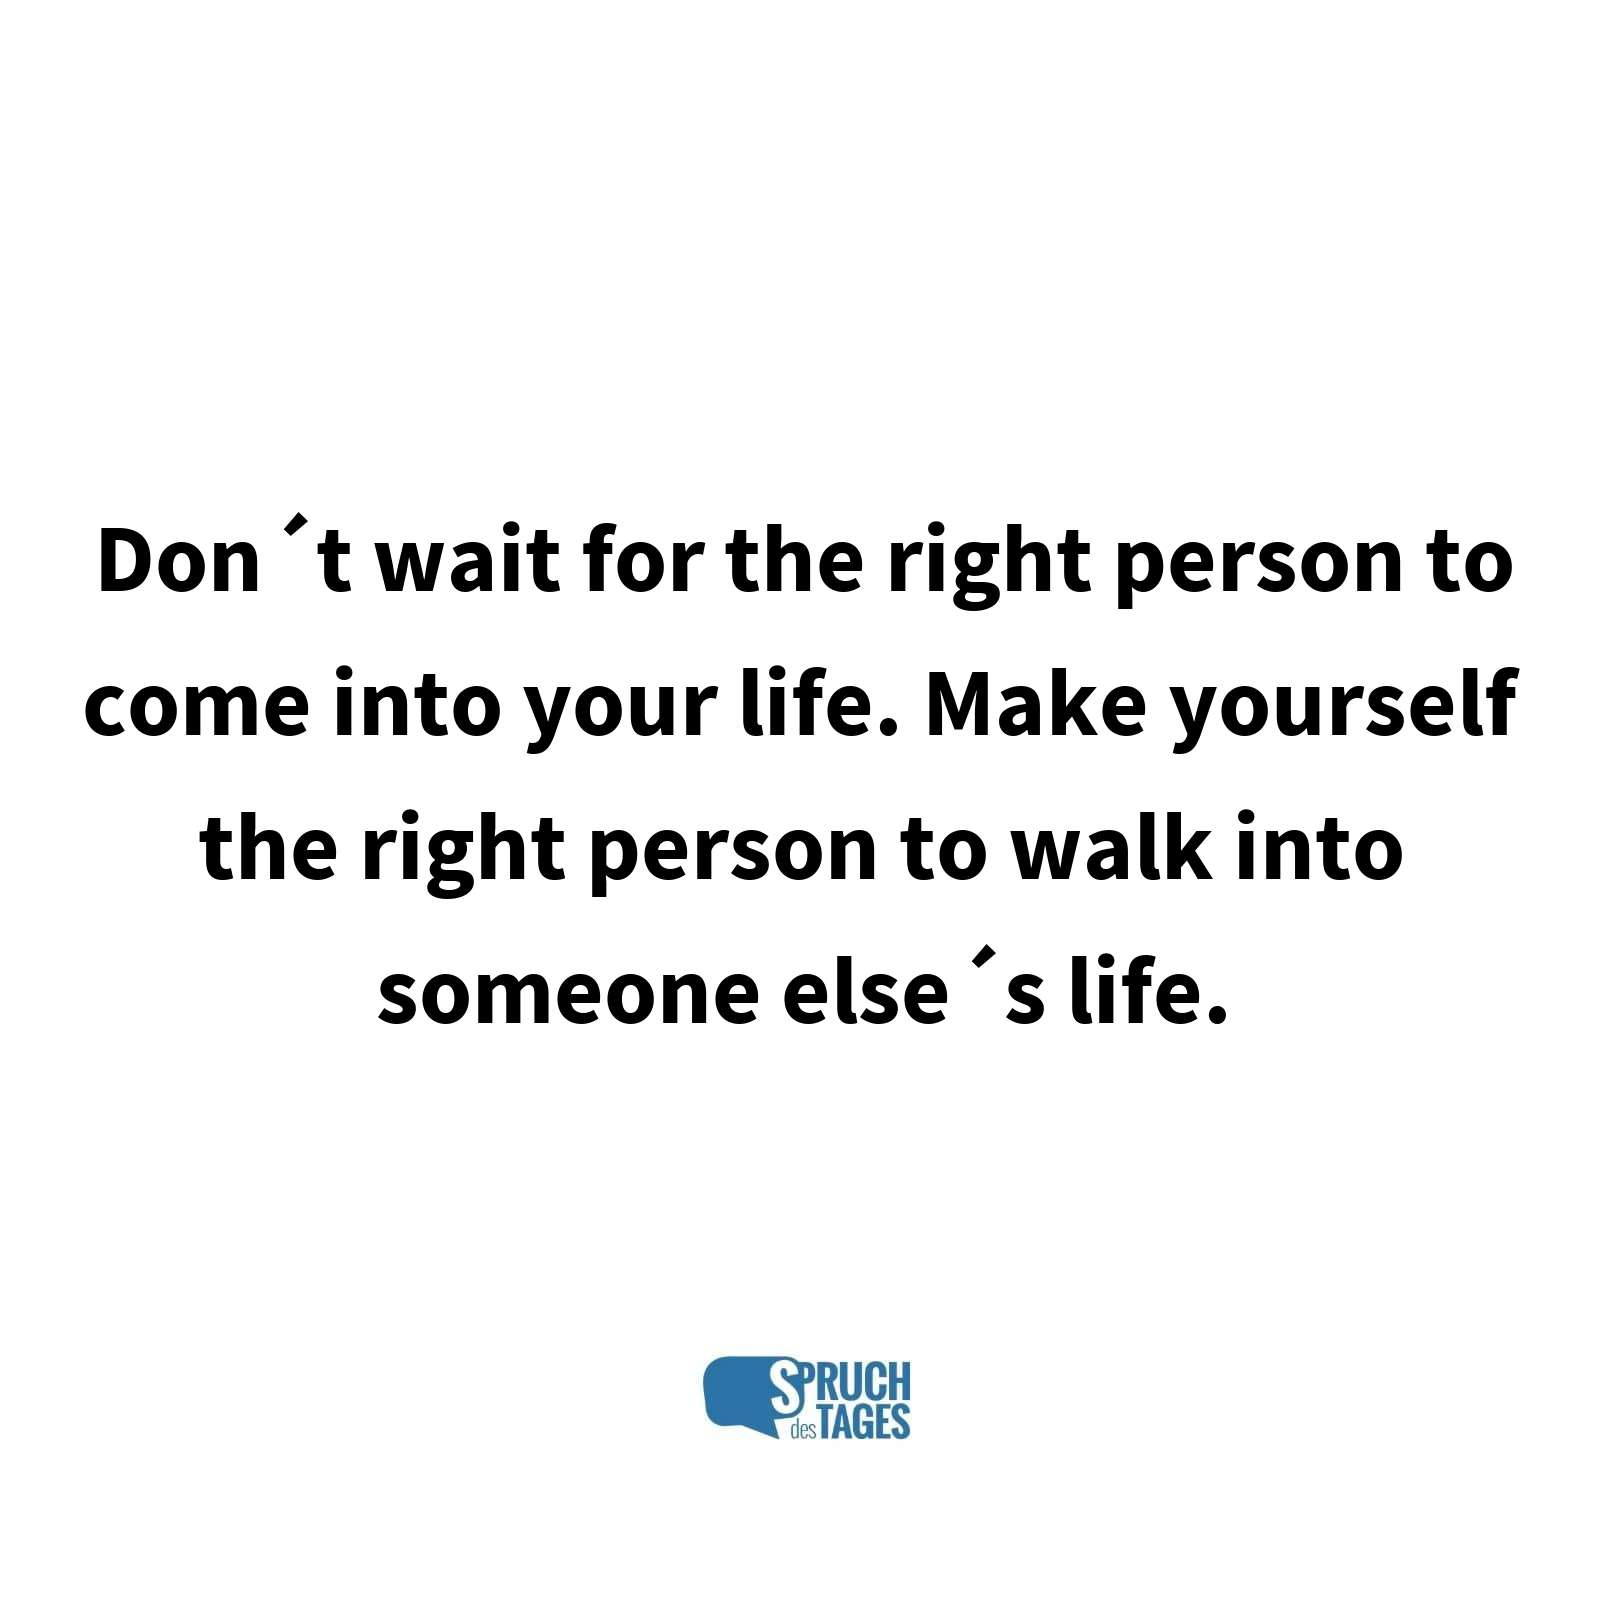 Don´t wait for the right person to come into your life. Make yourself the right person to walk into someone else´s life.